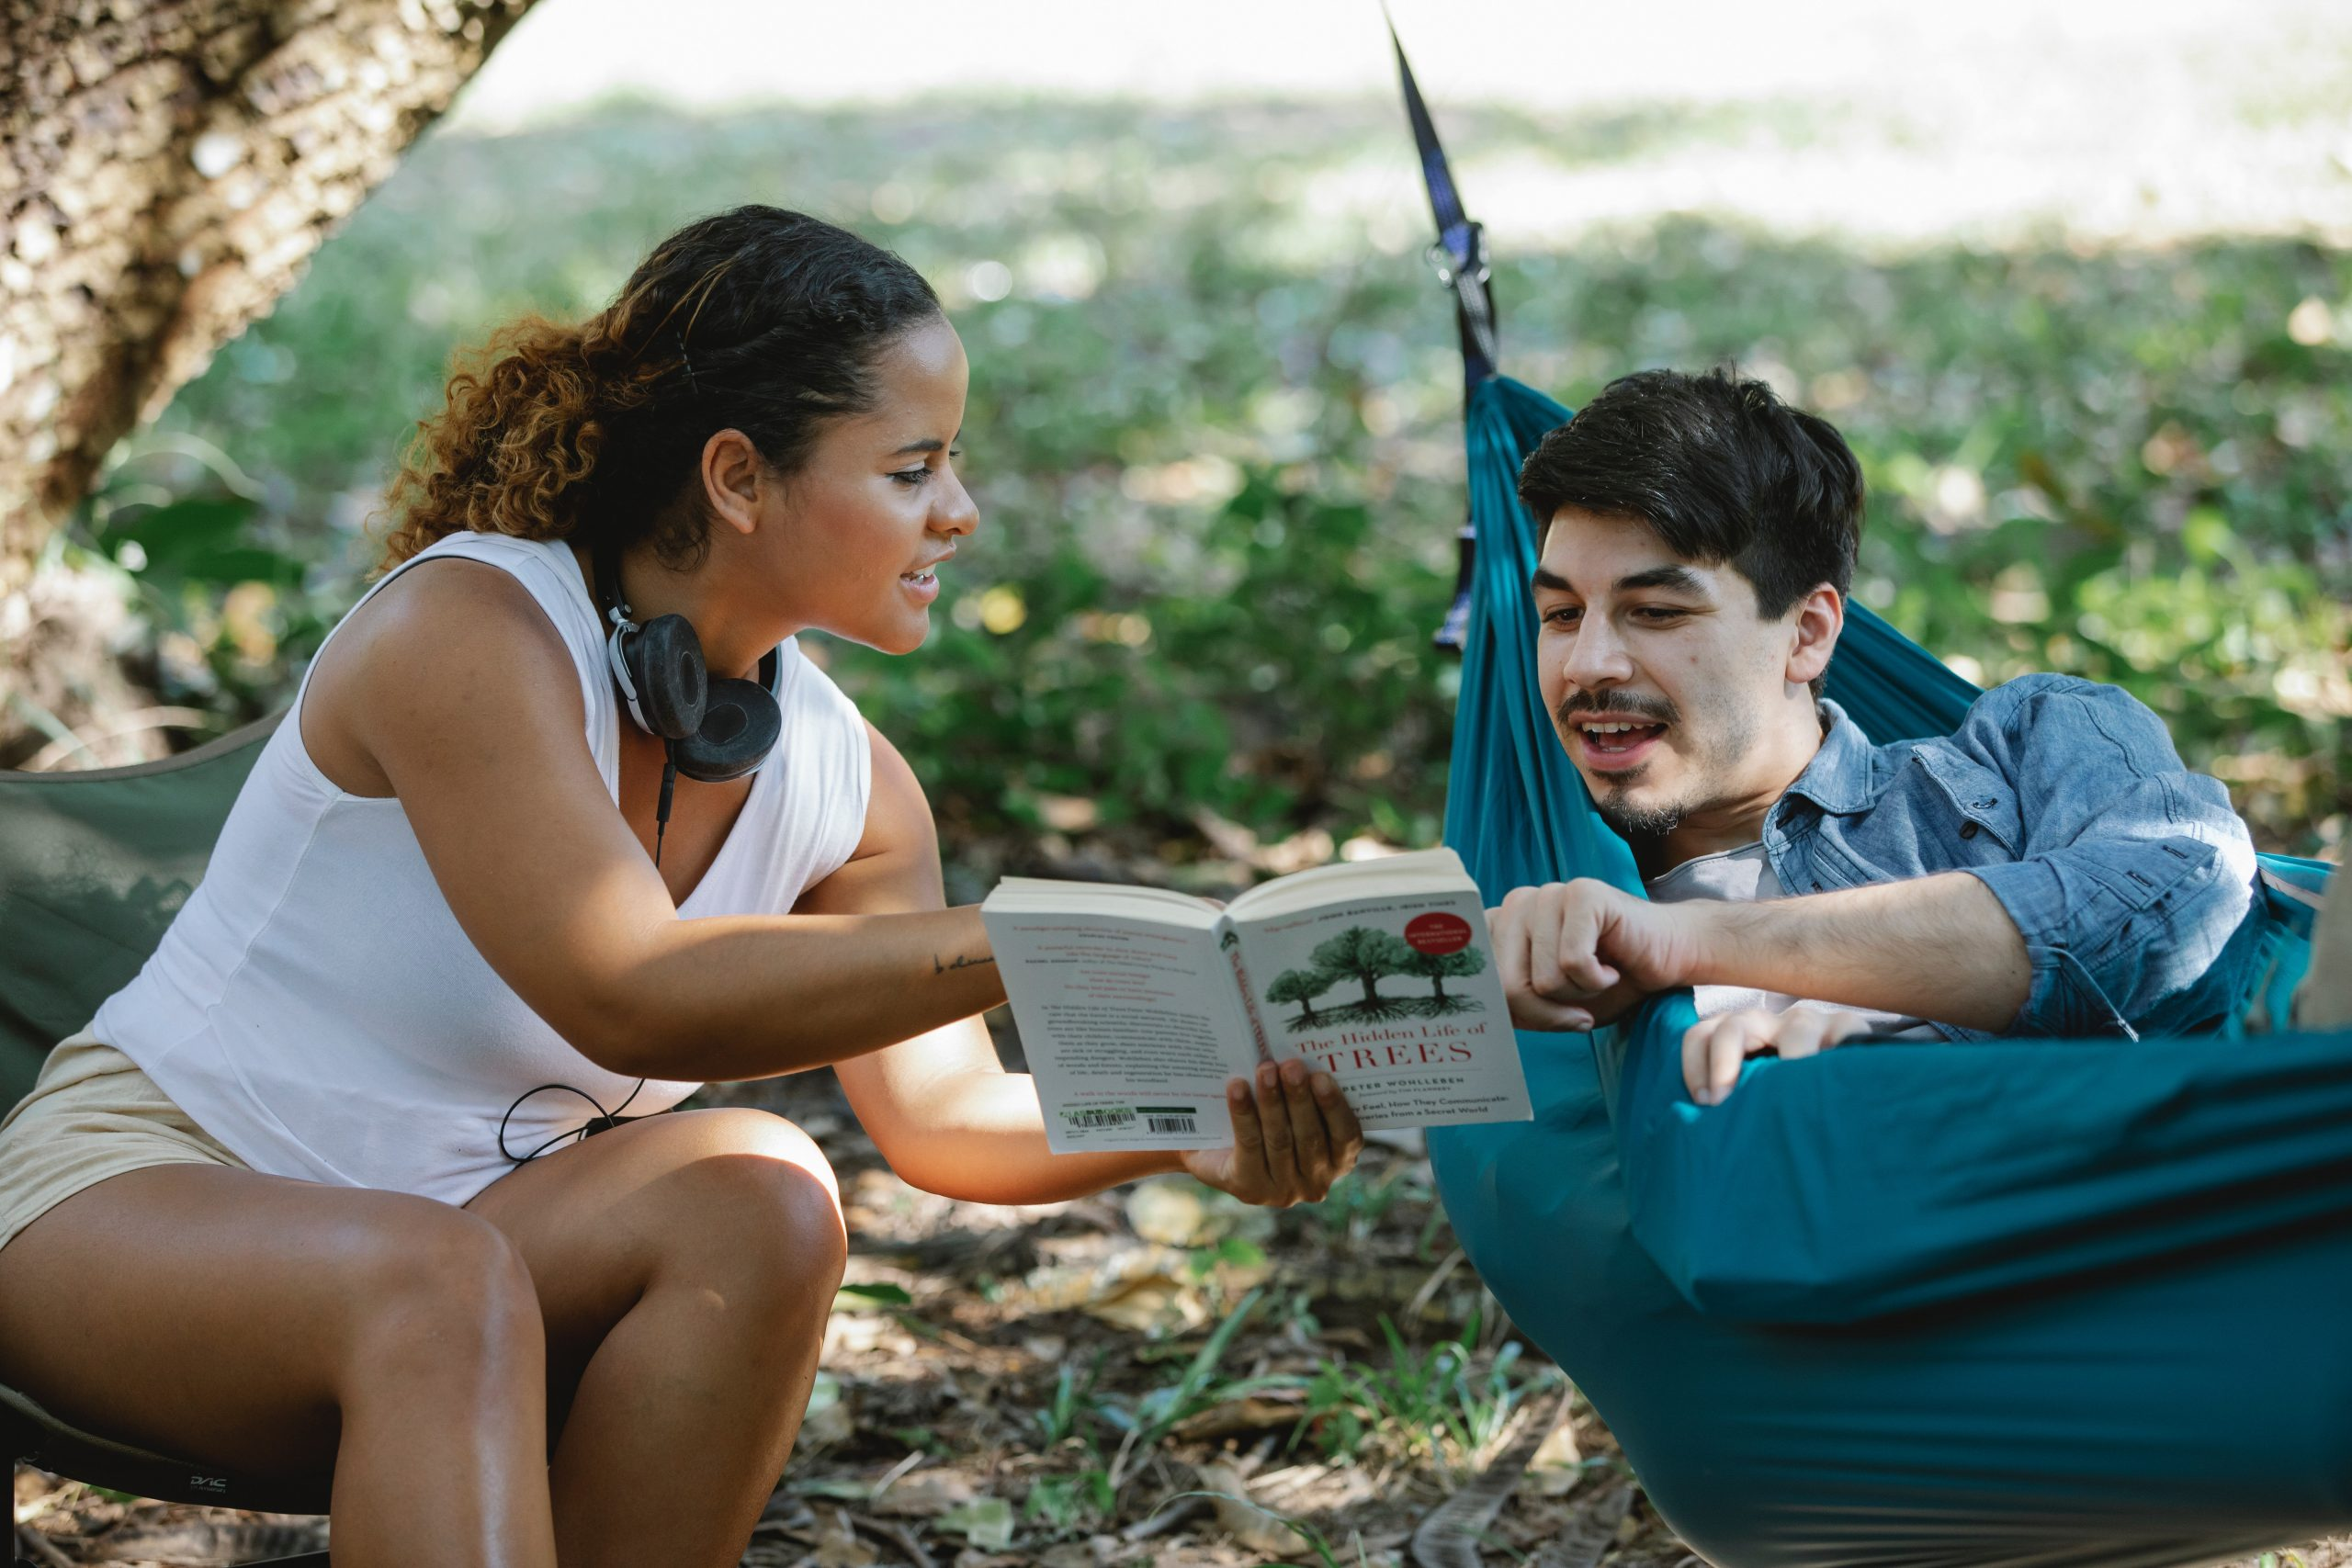 couple hanging out outside and talking about a book